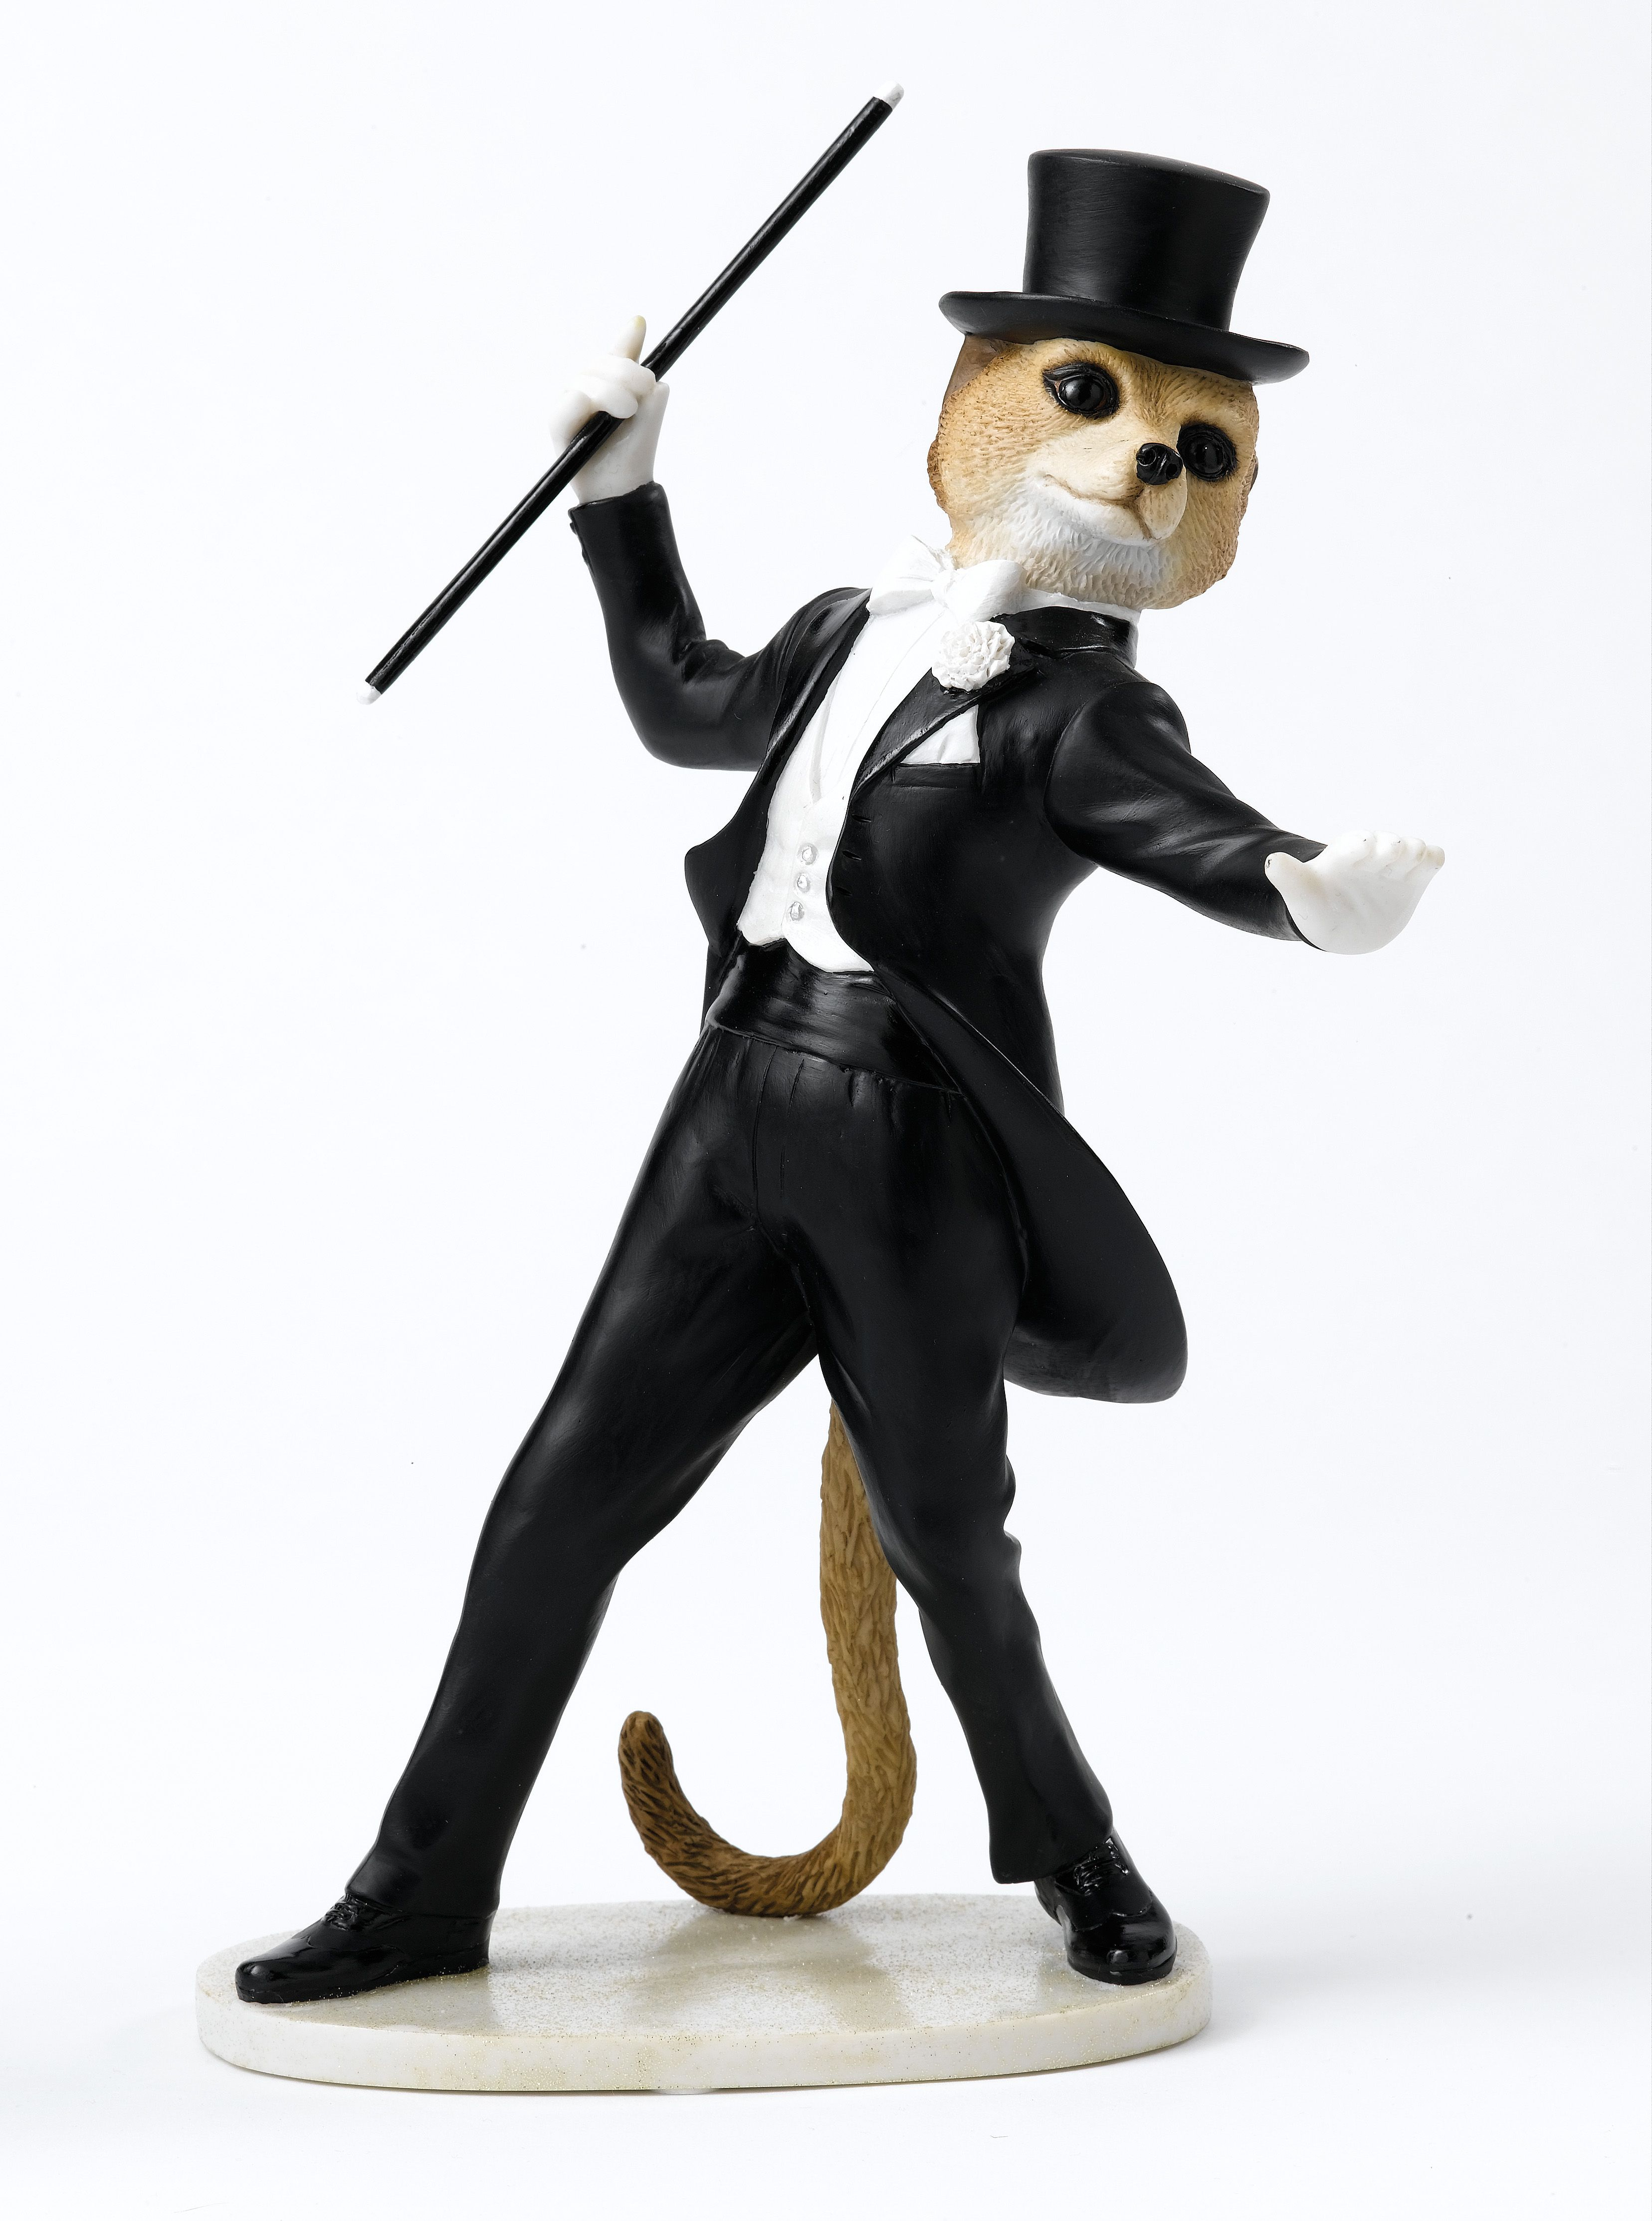 Dressed In His Tailored Suit Top Hat And Cane Dancer Is The Epitome Of Hollywood Glamour He S Suave And Sophisticated K Meerkat Magnificent Country Artists